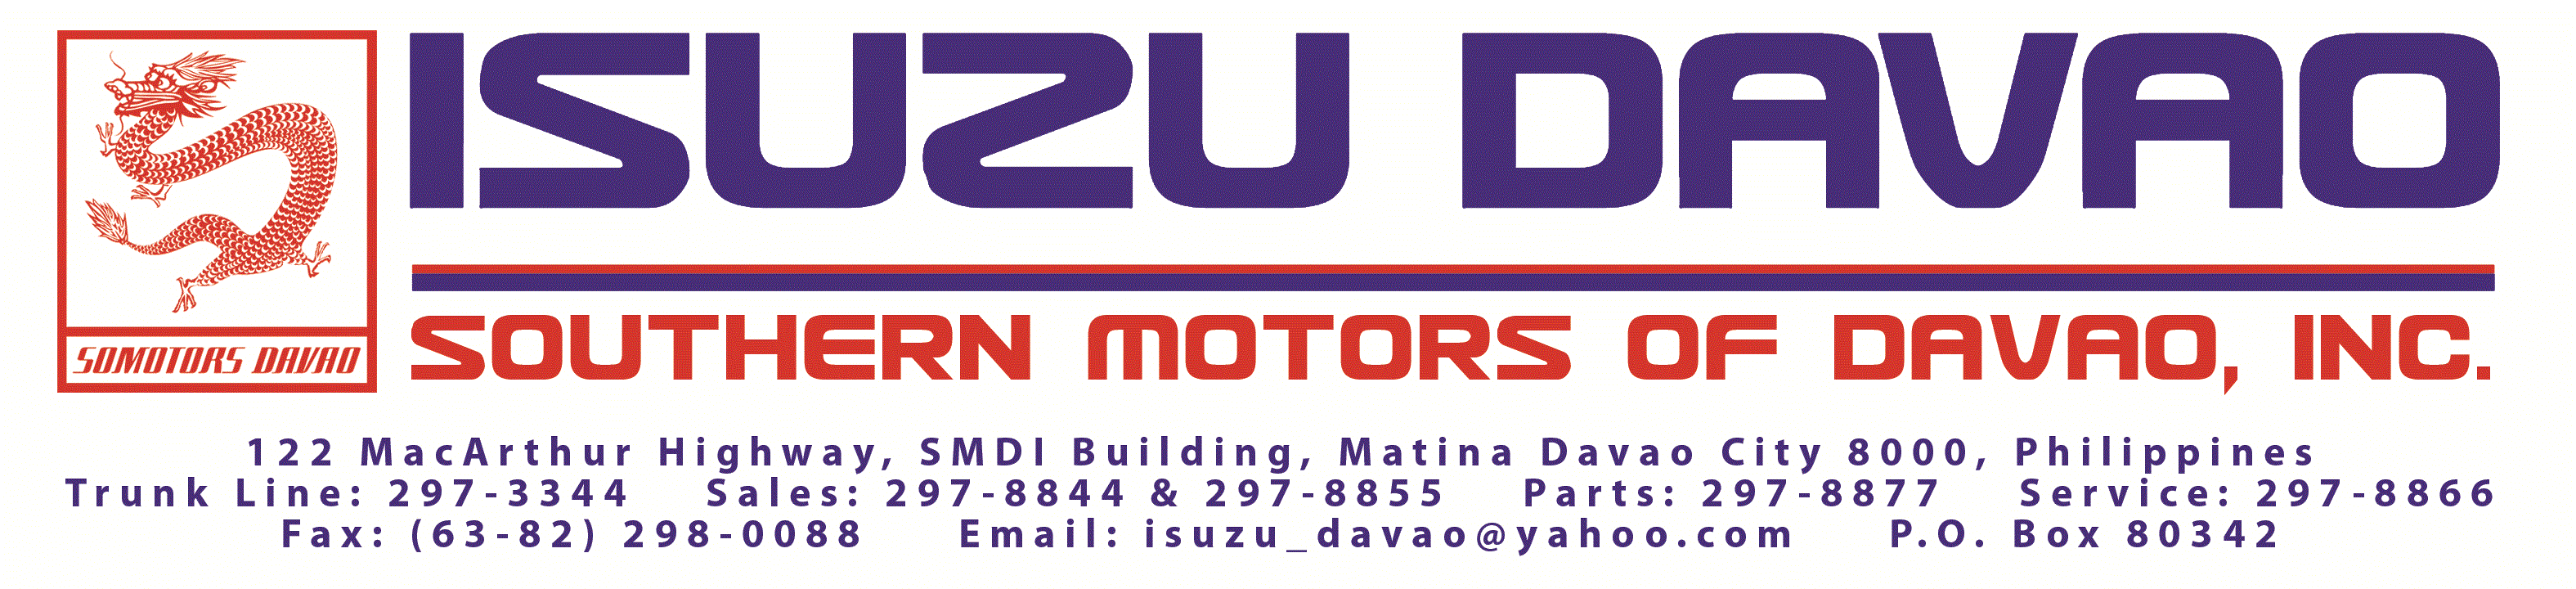 Southern Motors of Davao Inc